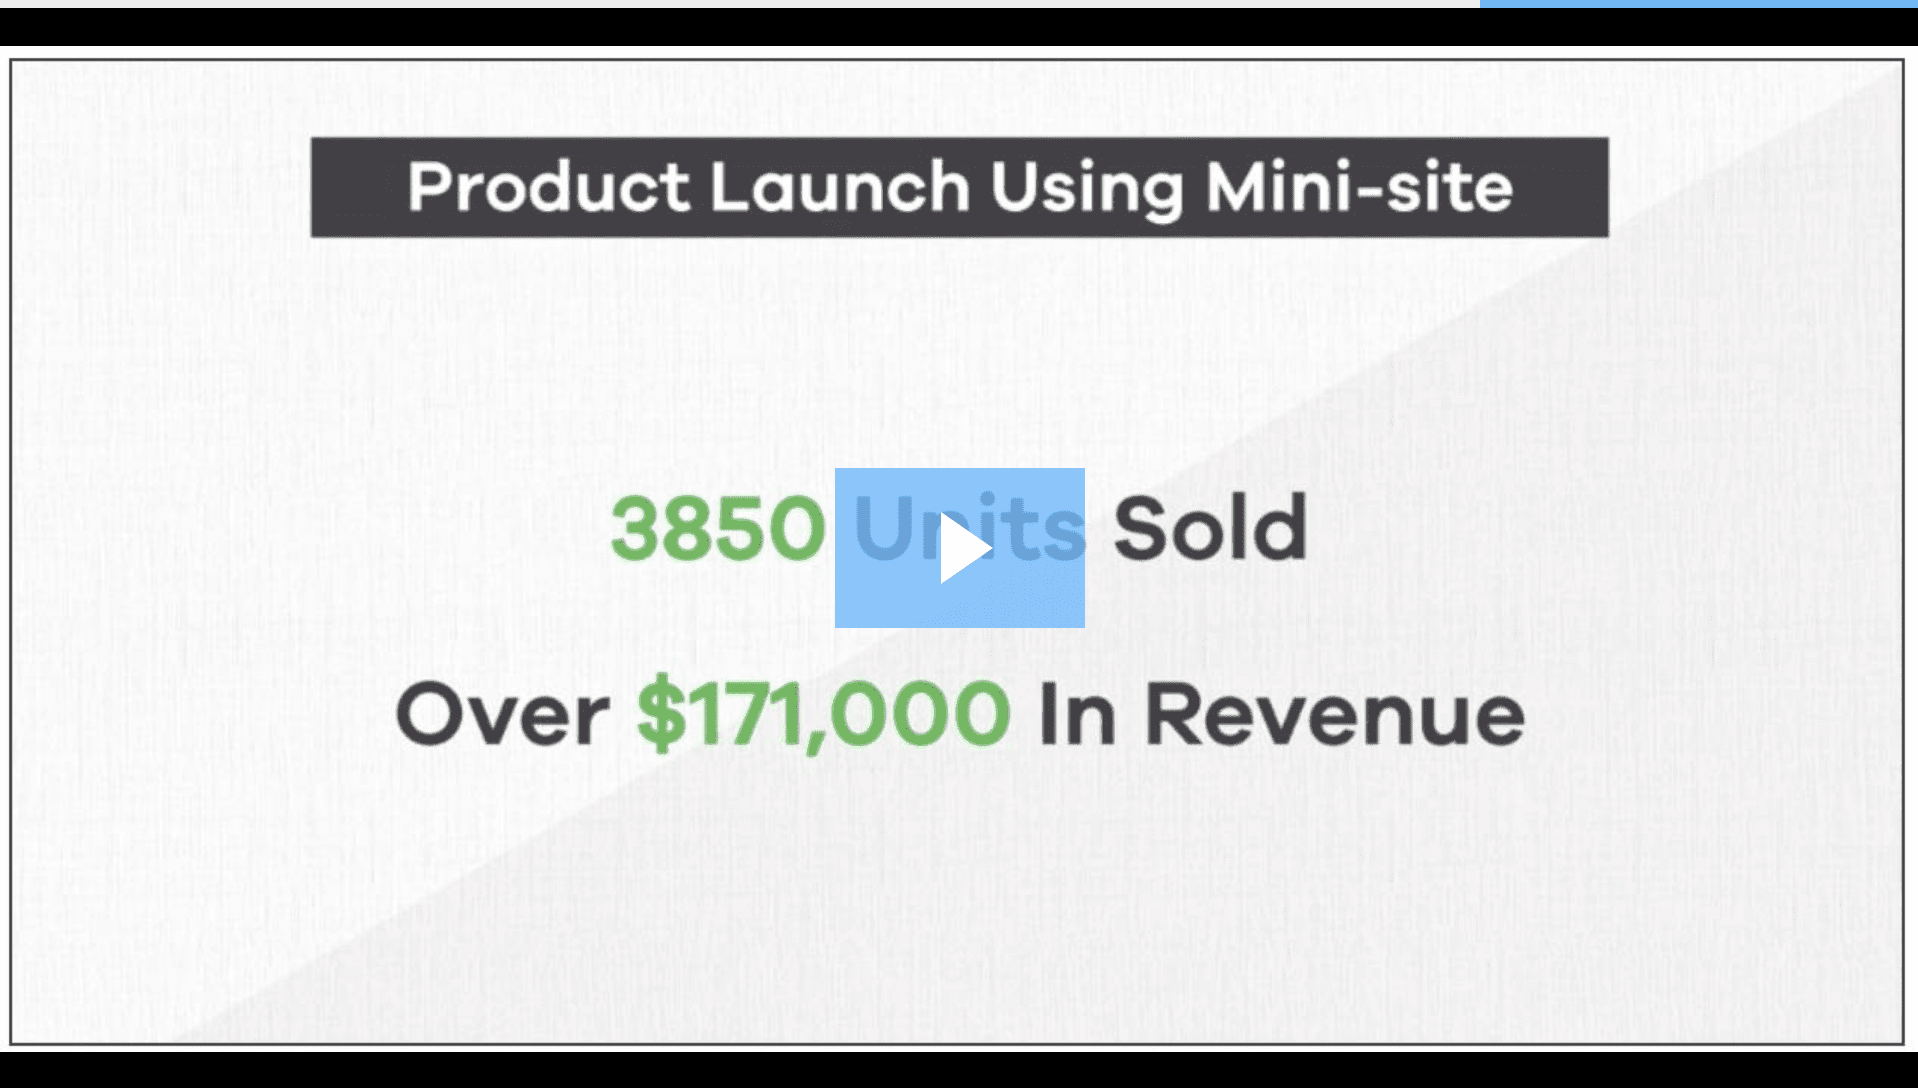 Product Launch using mini-site